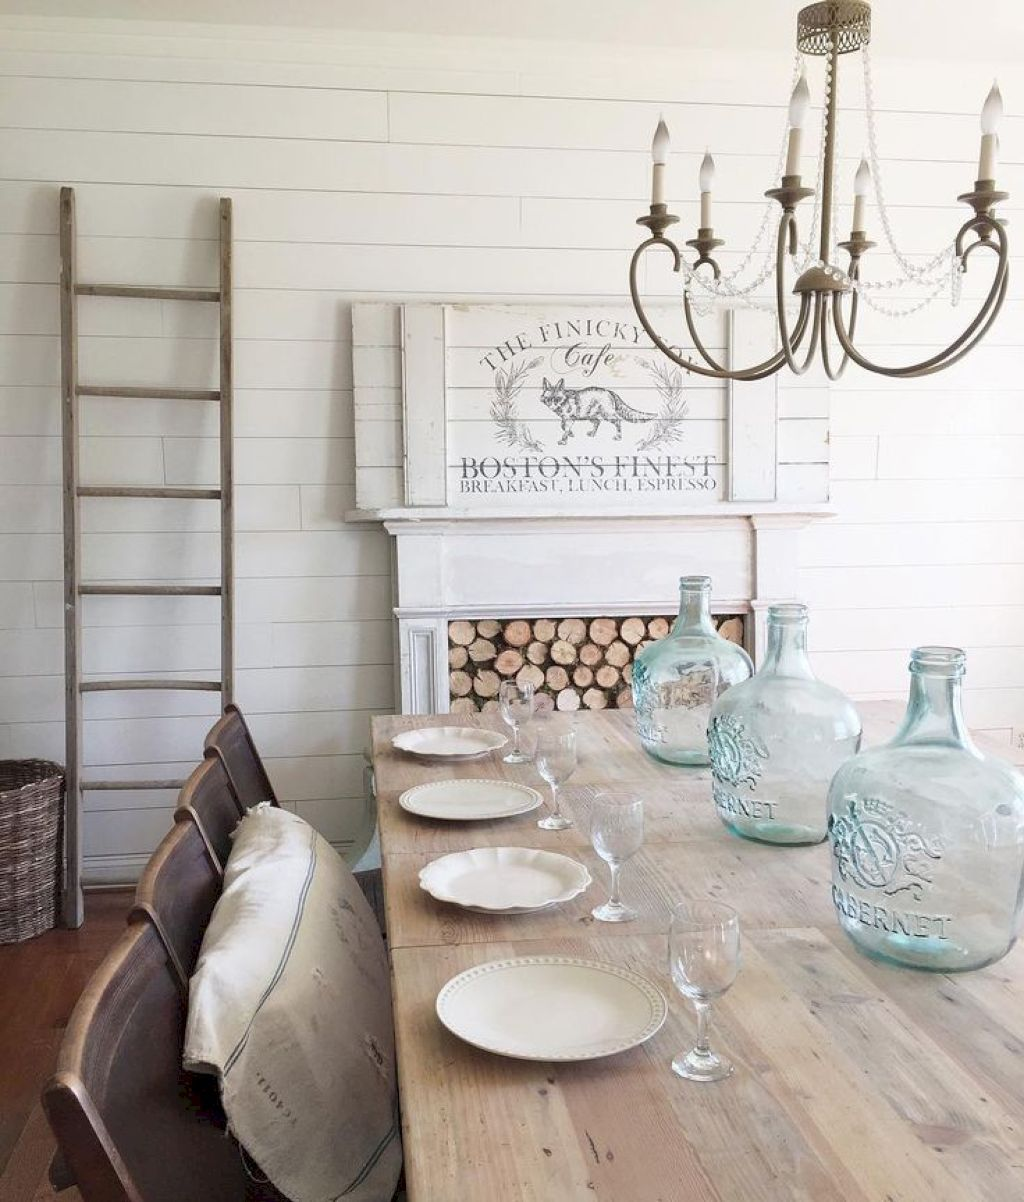 Dining Room Remodel Pictures Gorgeous 40 Comfy Modern Farmhouse Dining Room Remodel Ideas  Modern Design Inspiration